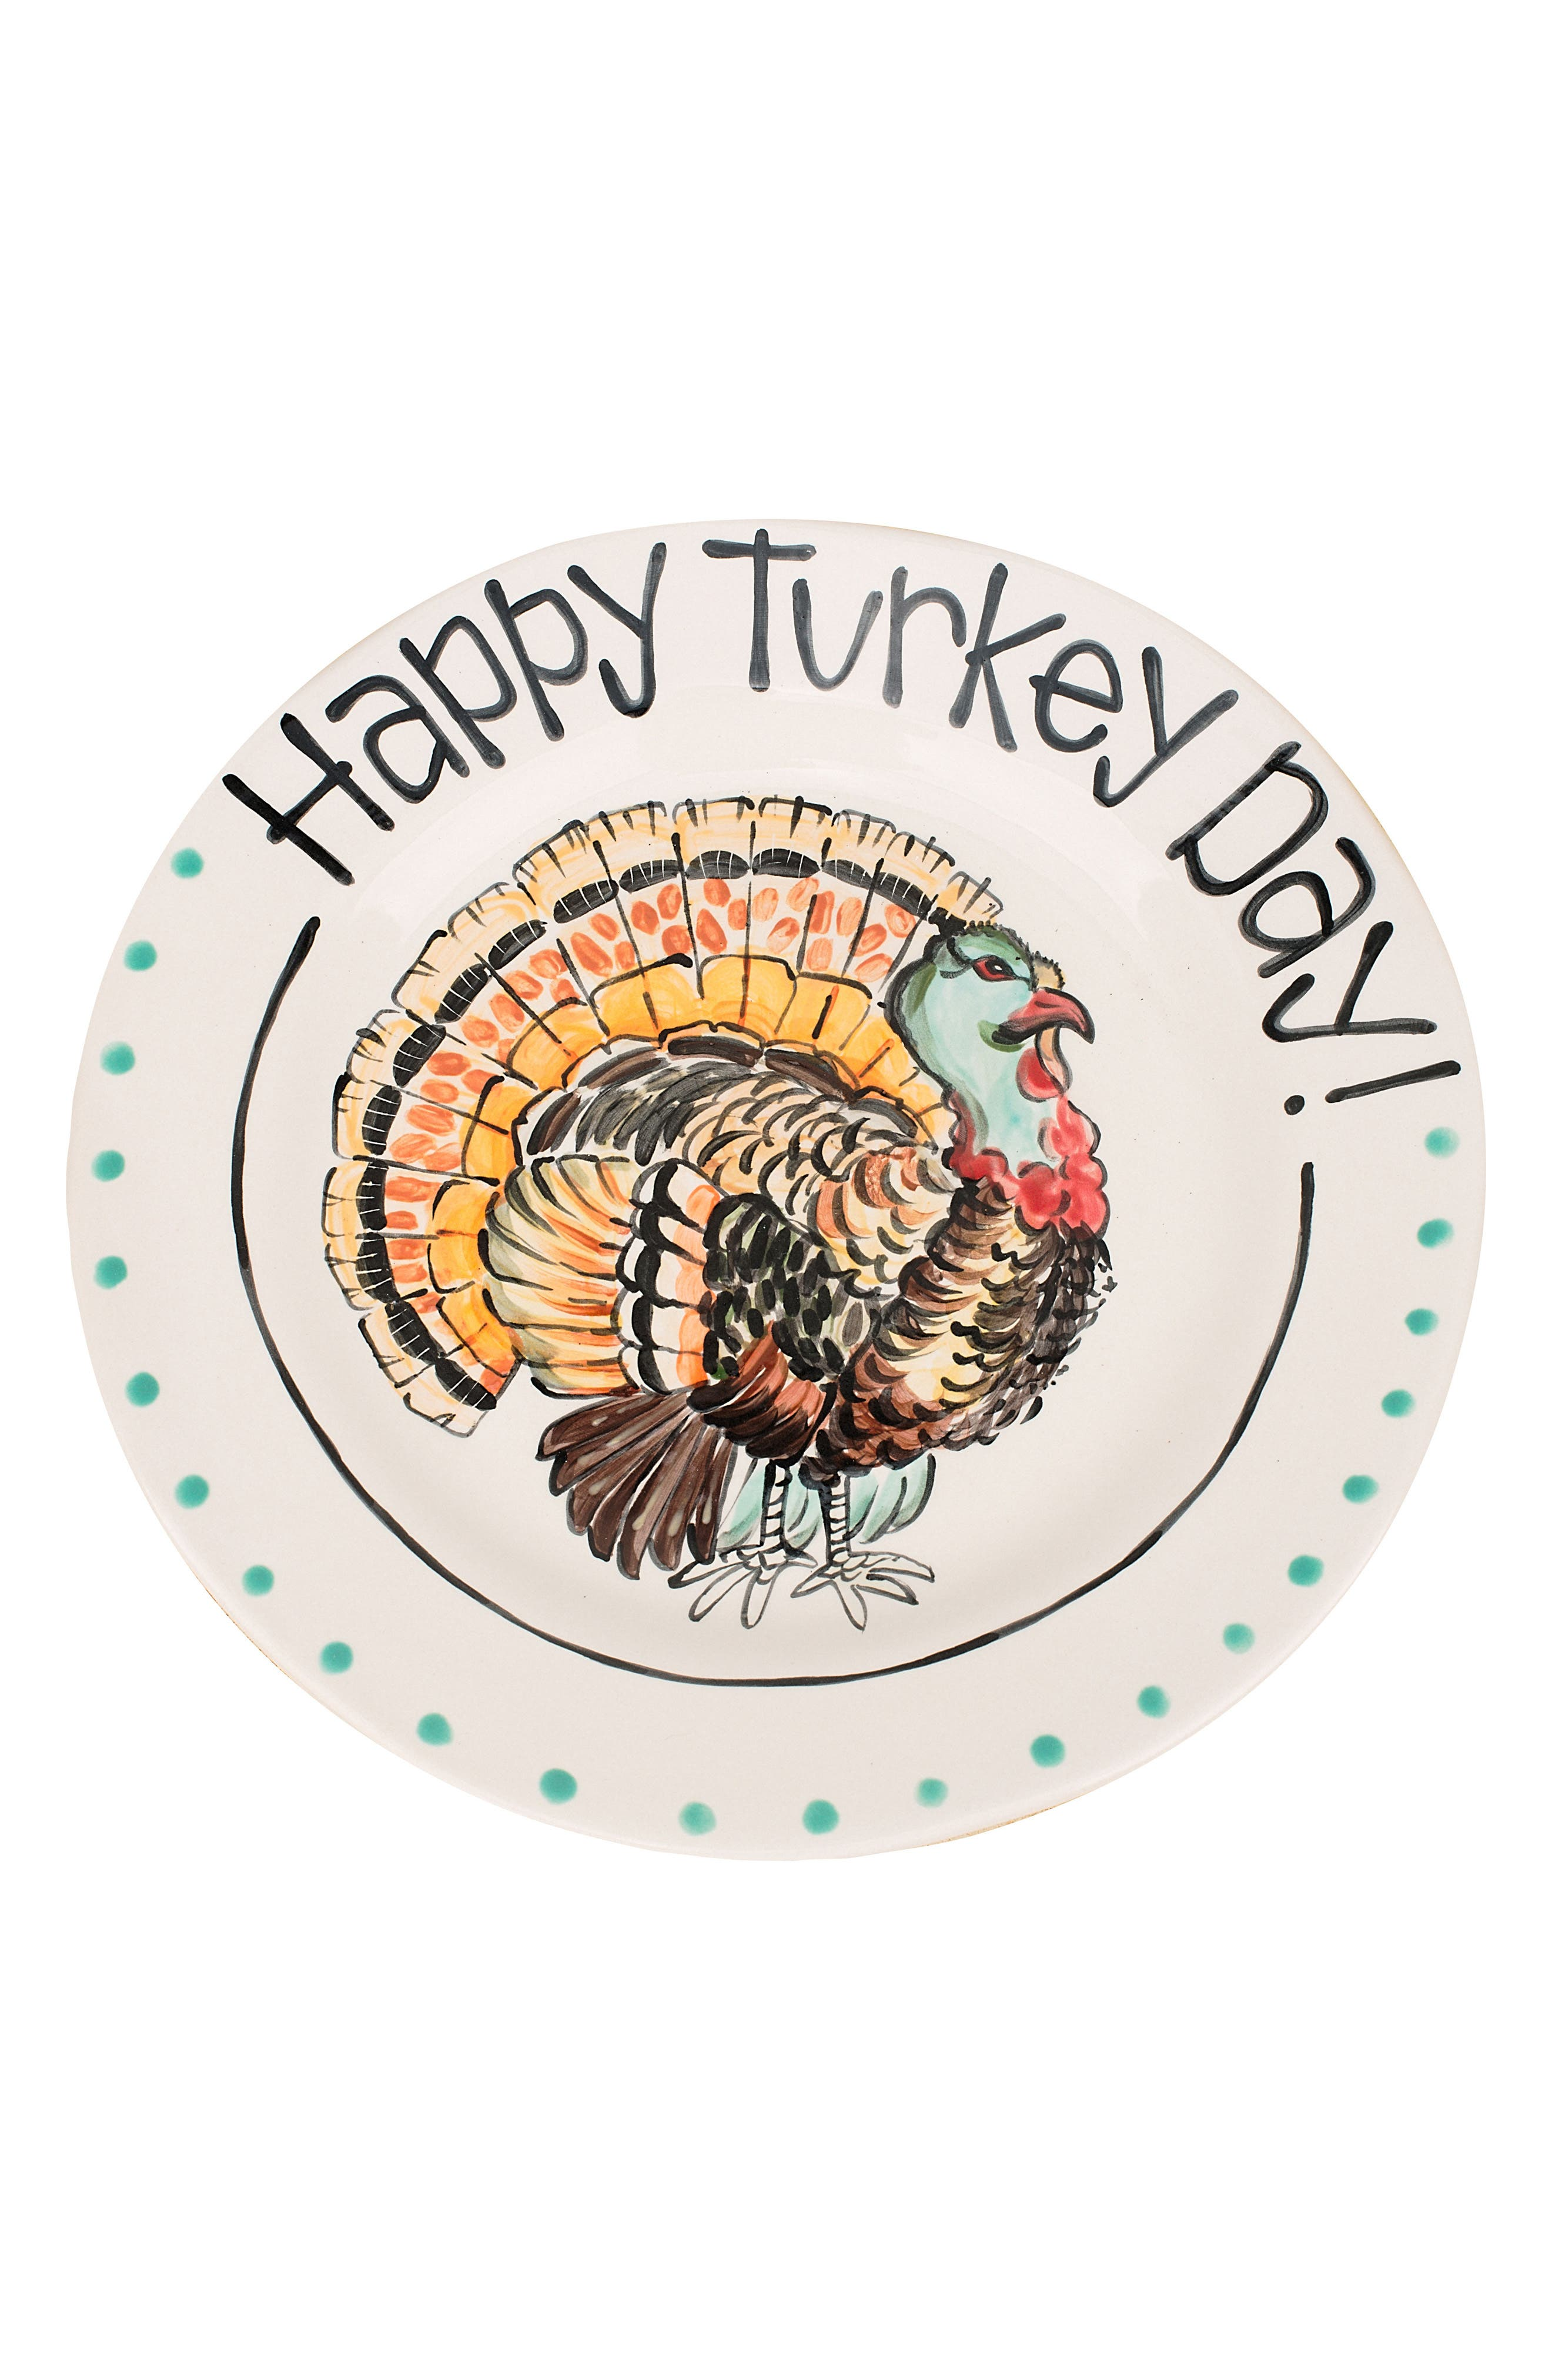 Happy Turkey Day Plate,                             Main thumbnail 1, color,                             900